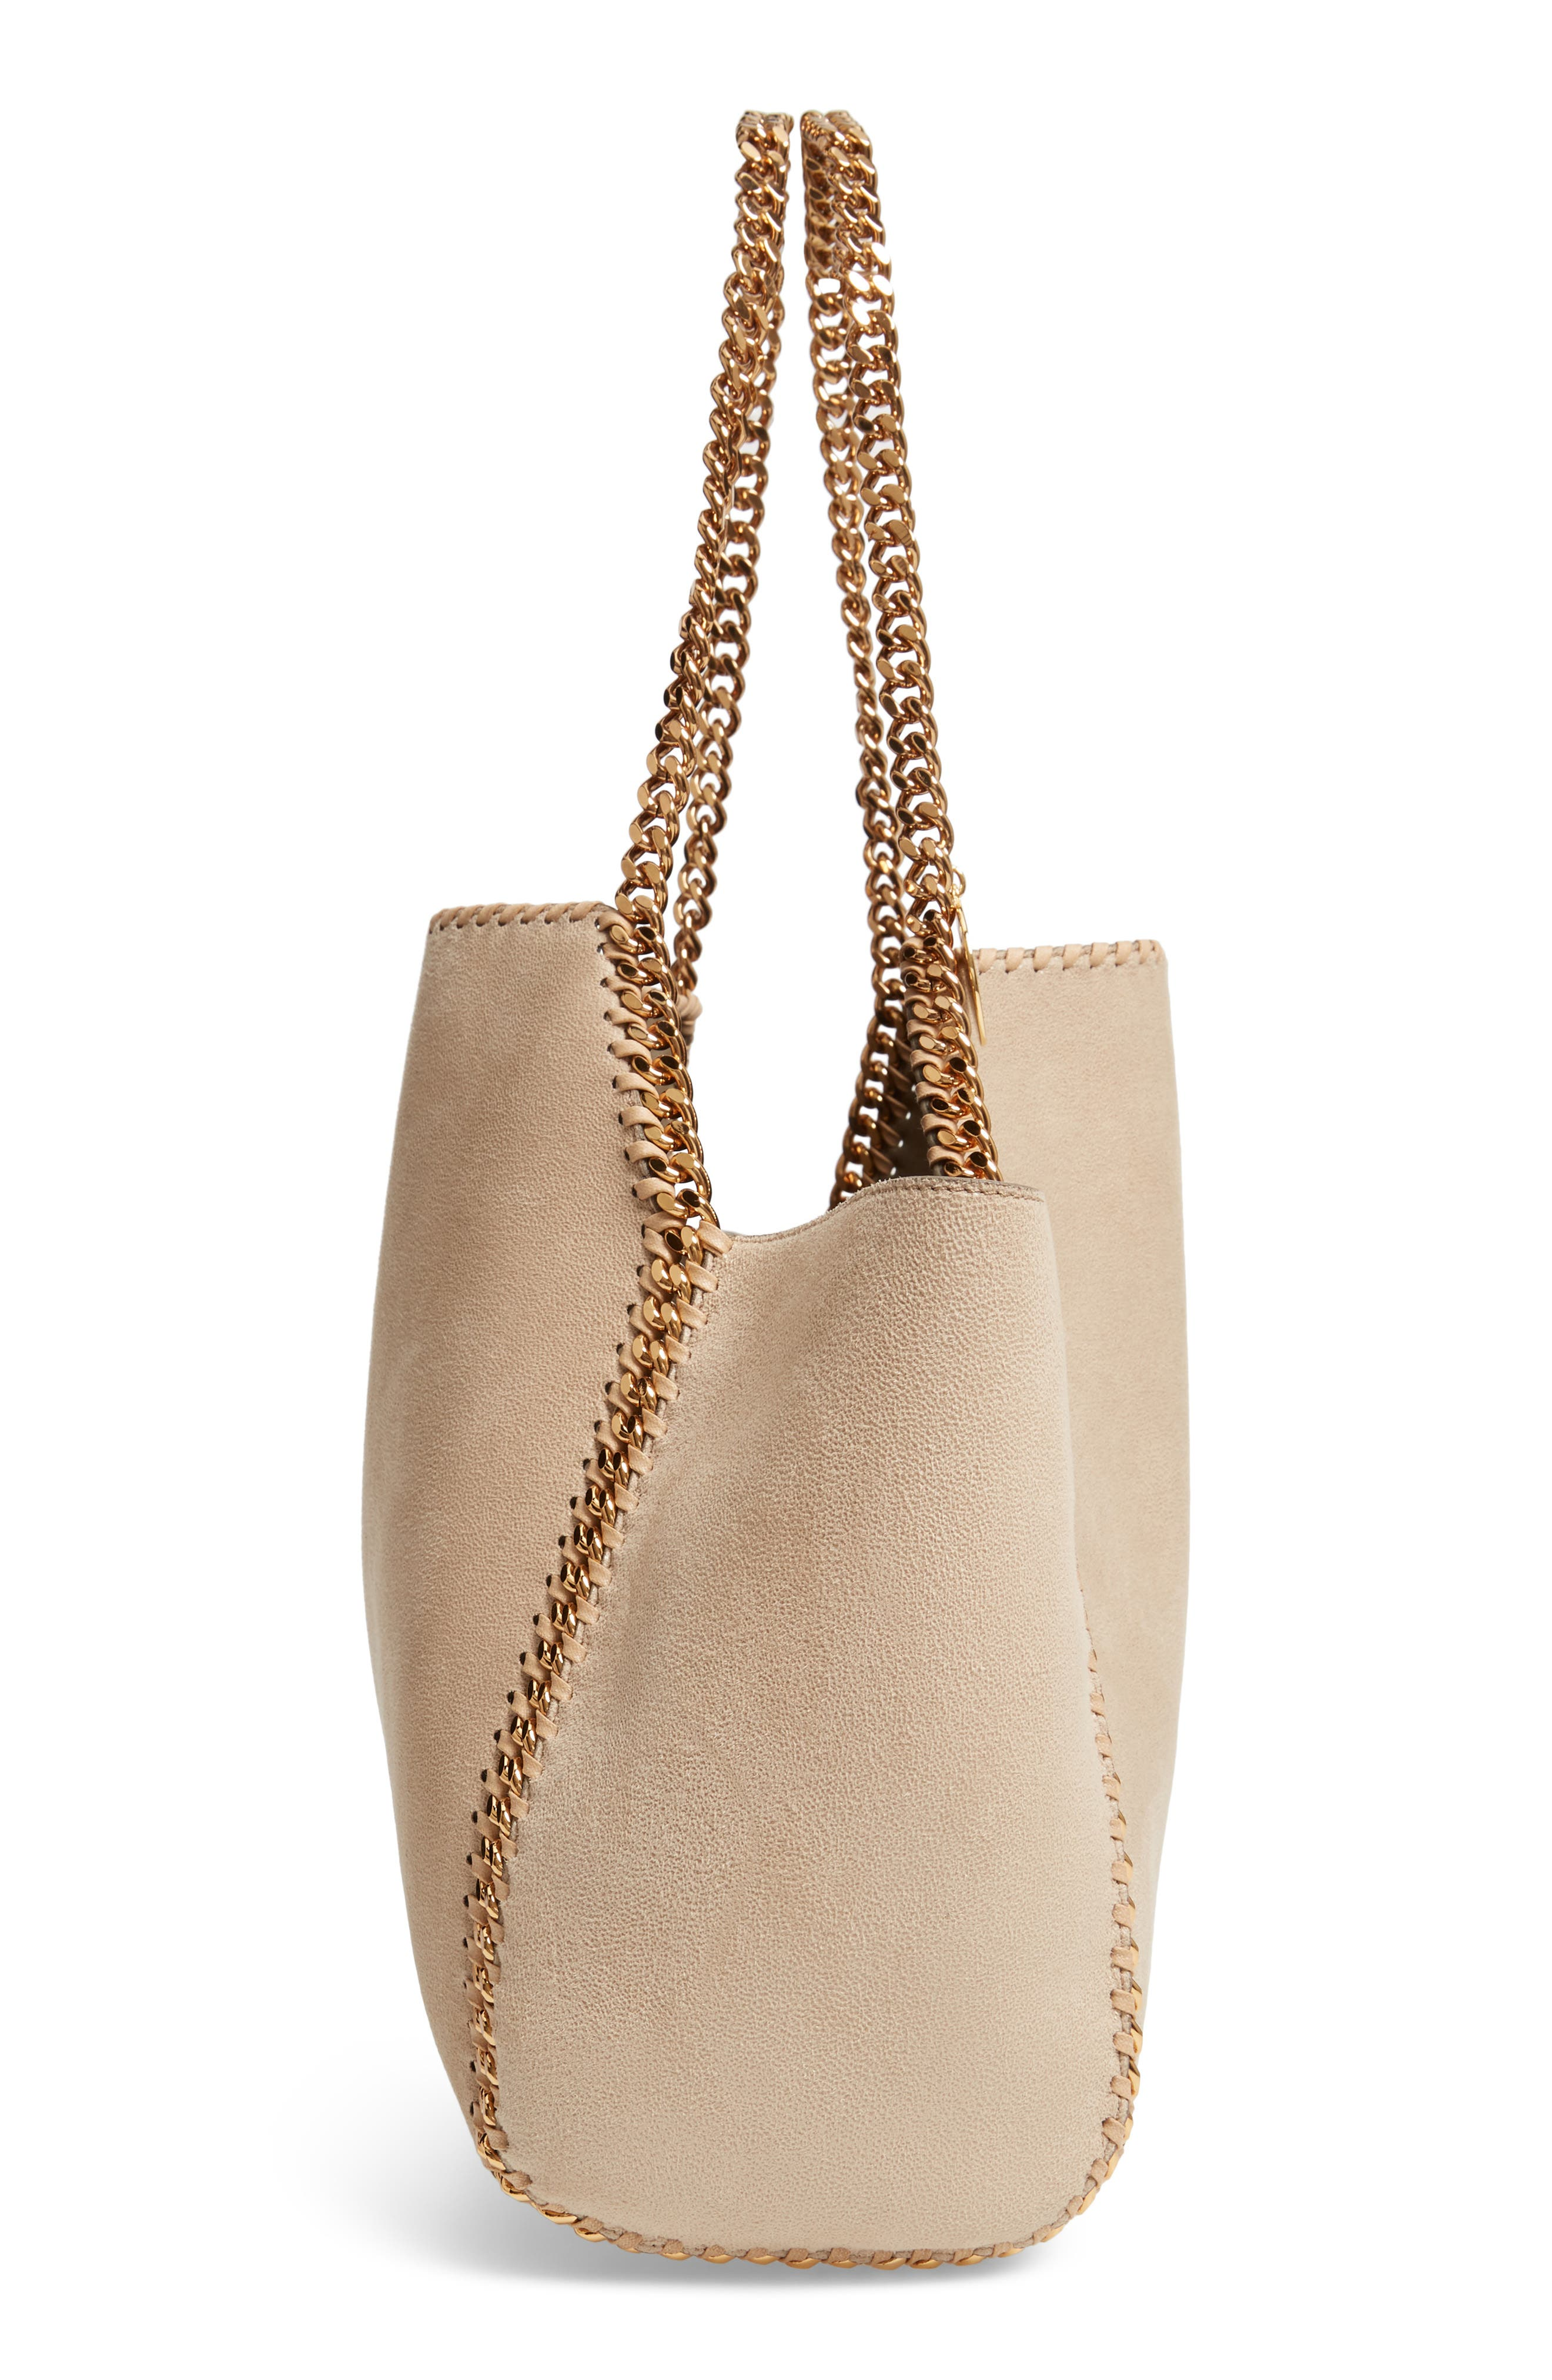 Shaggy Deer Reversible Faux Leather Tote,                             Alternate thumbnail 6, color,                             CLOTTED CREAM